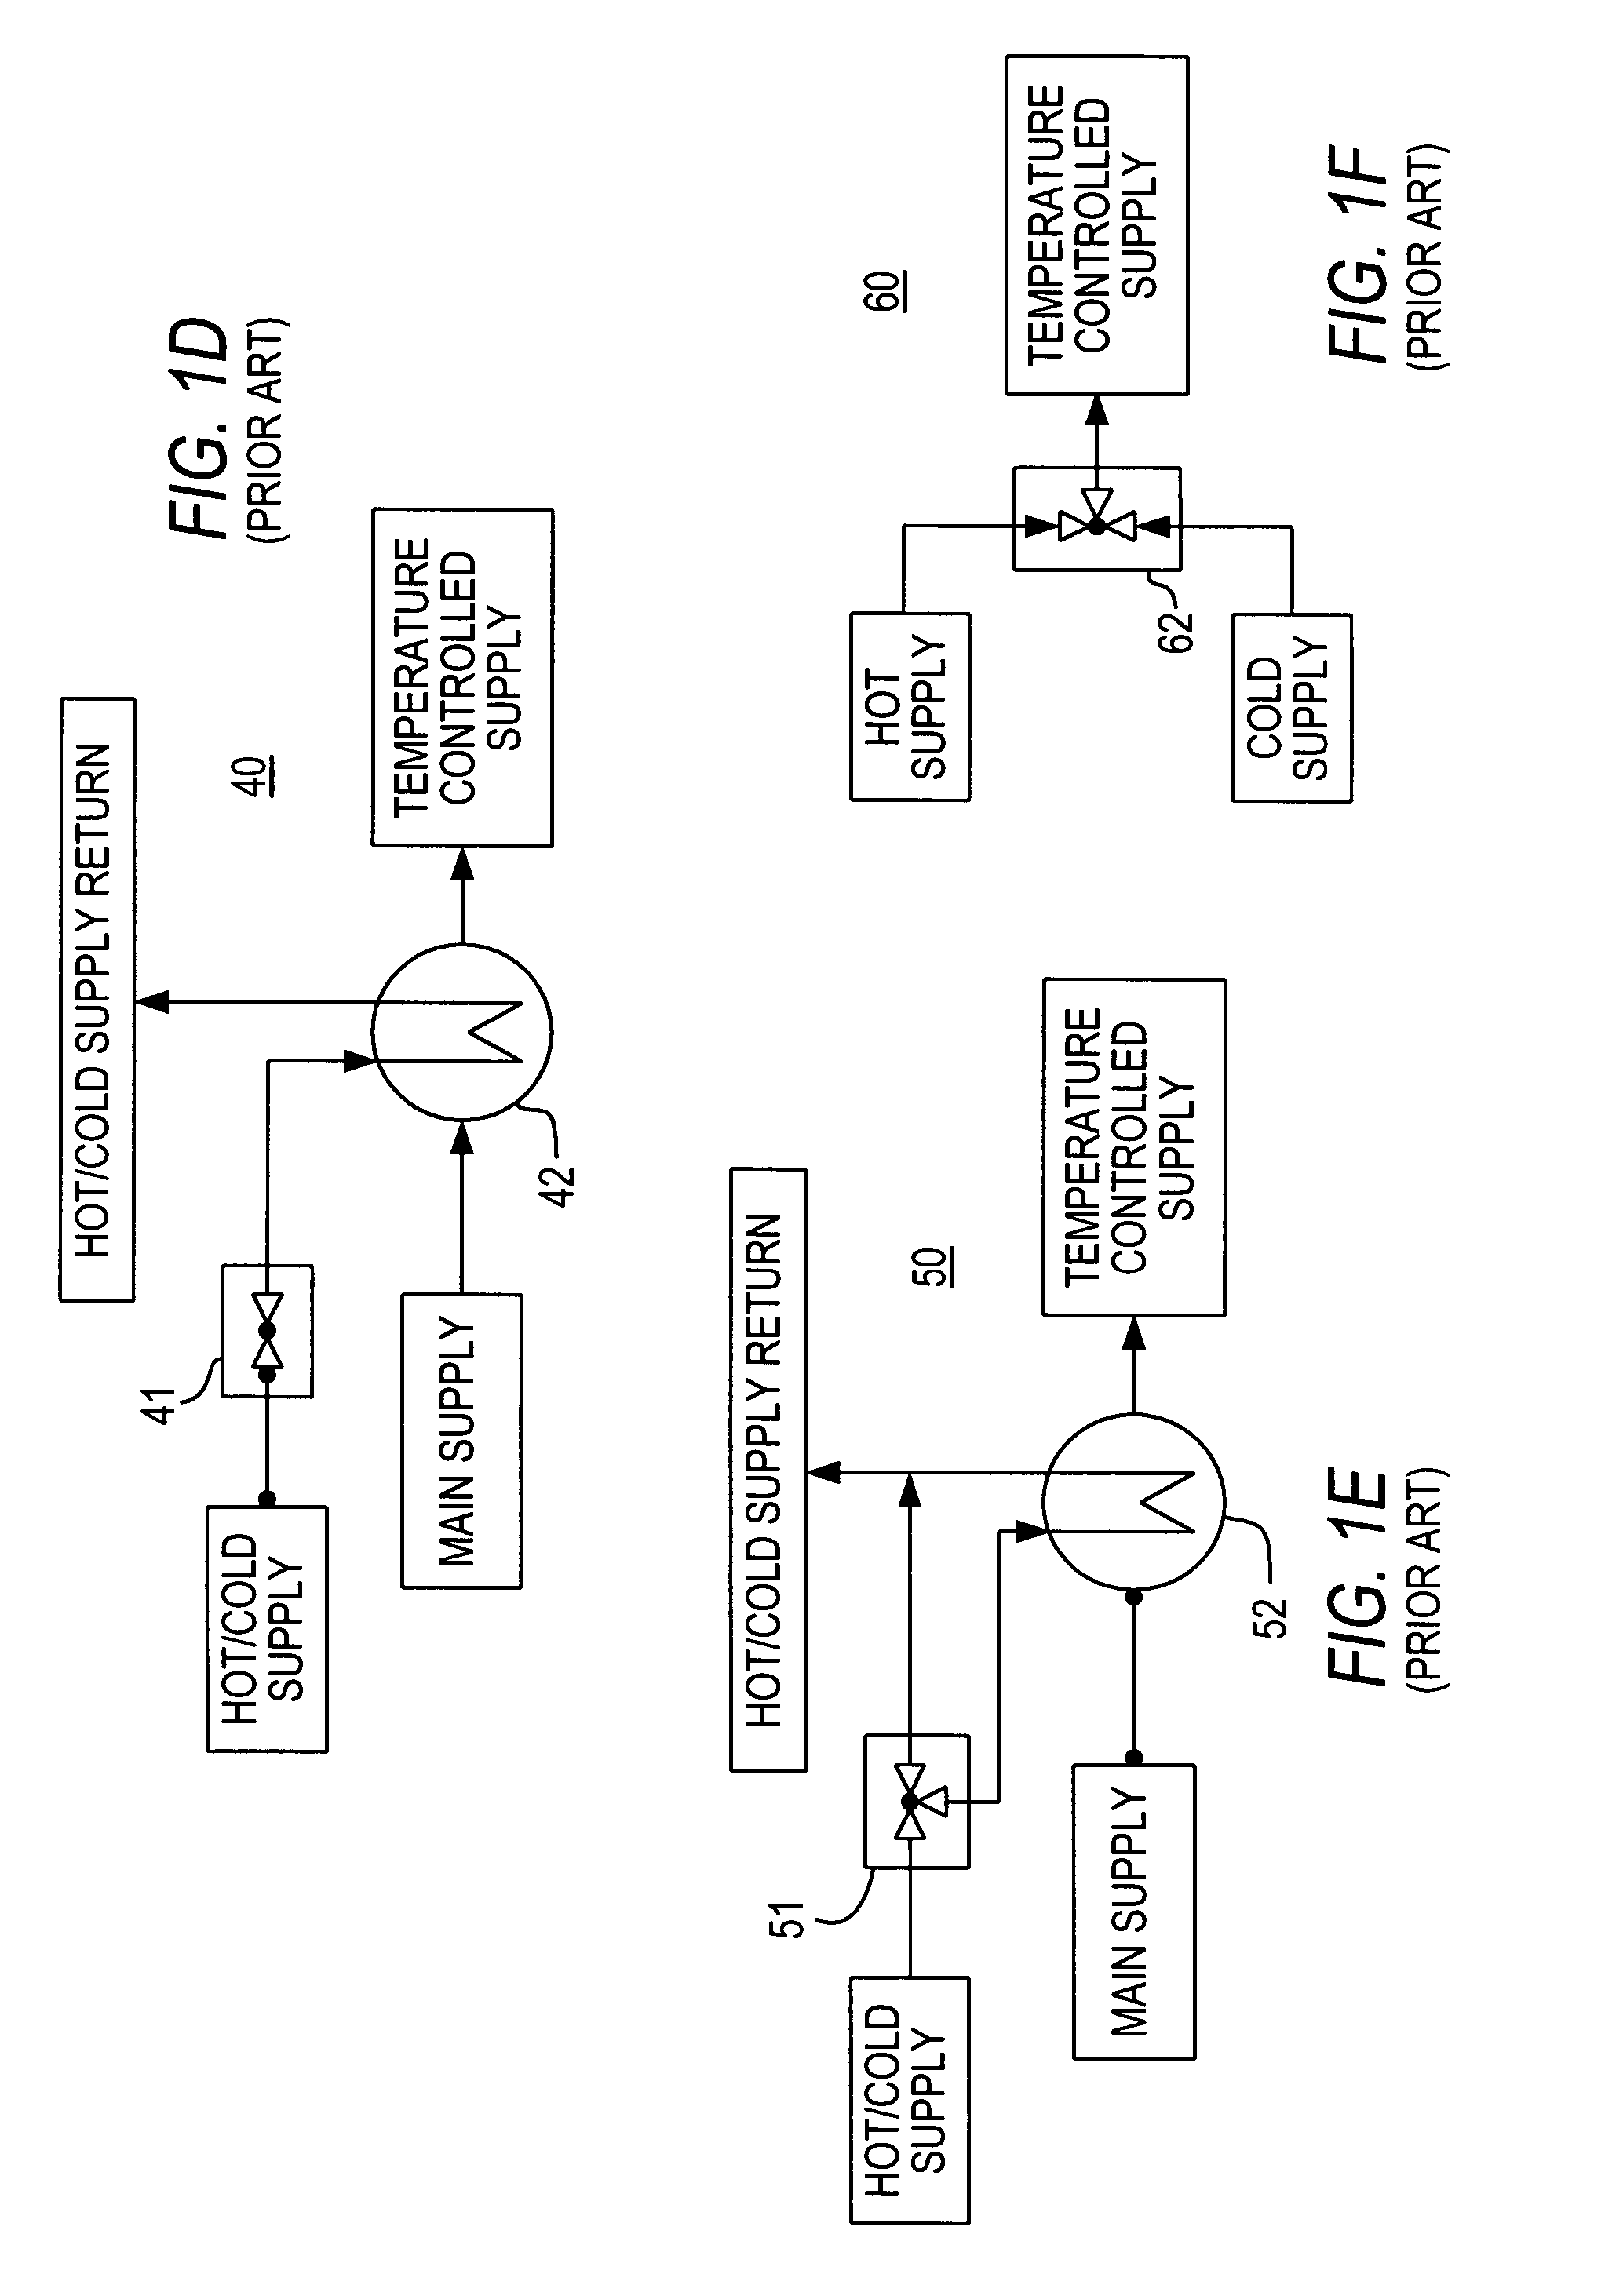 US8333330 additionally Designing A Model Predictive Controller For A Simulink Plant likewise US7163156 besides US8630742 further Control. on setpoint control system